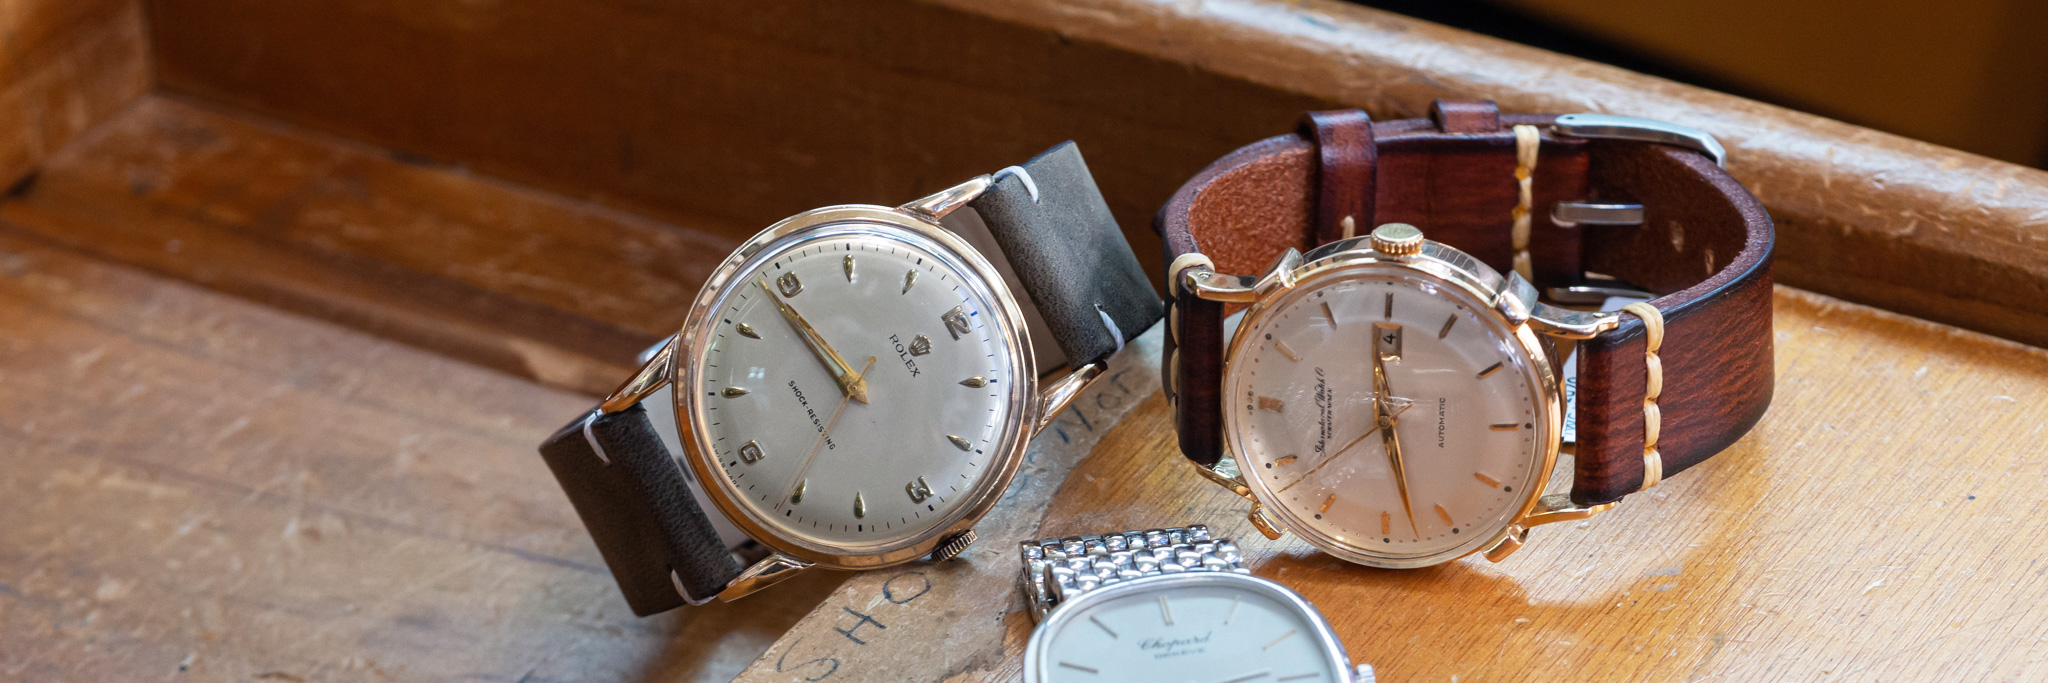 Swiss Made Watches secondhand